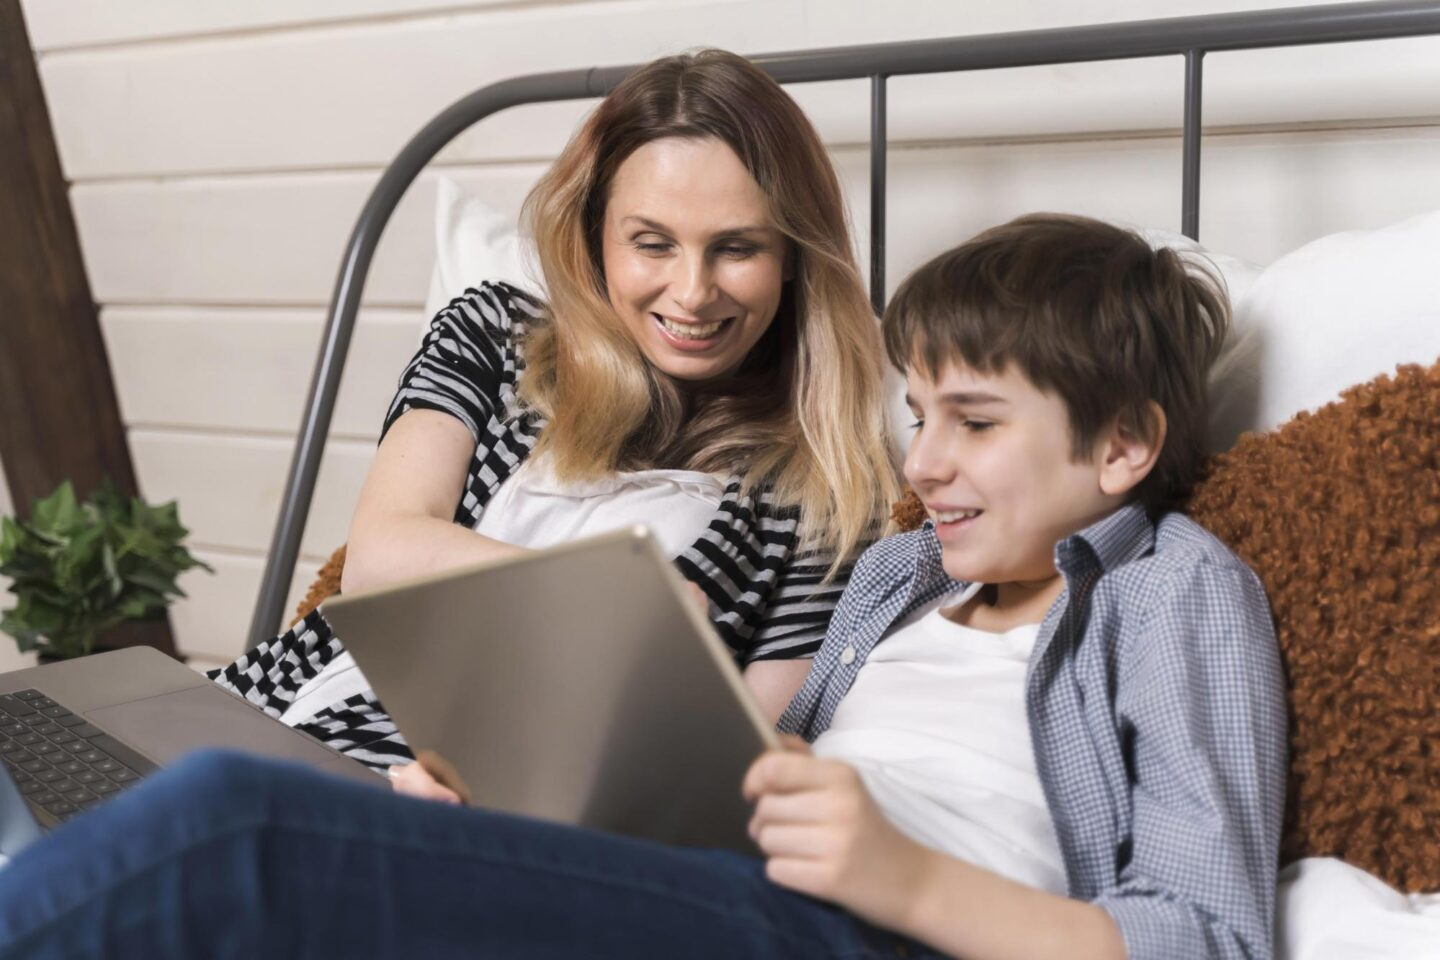 Happy mom and her son are playing math games on tablet PC